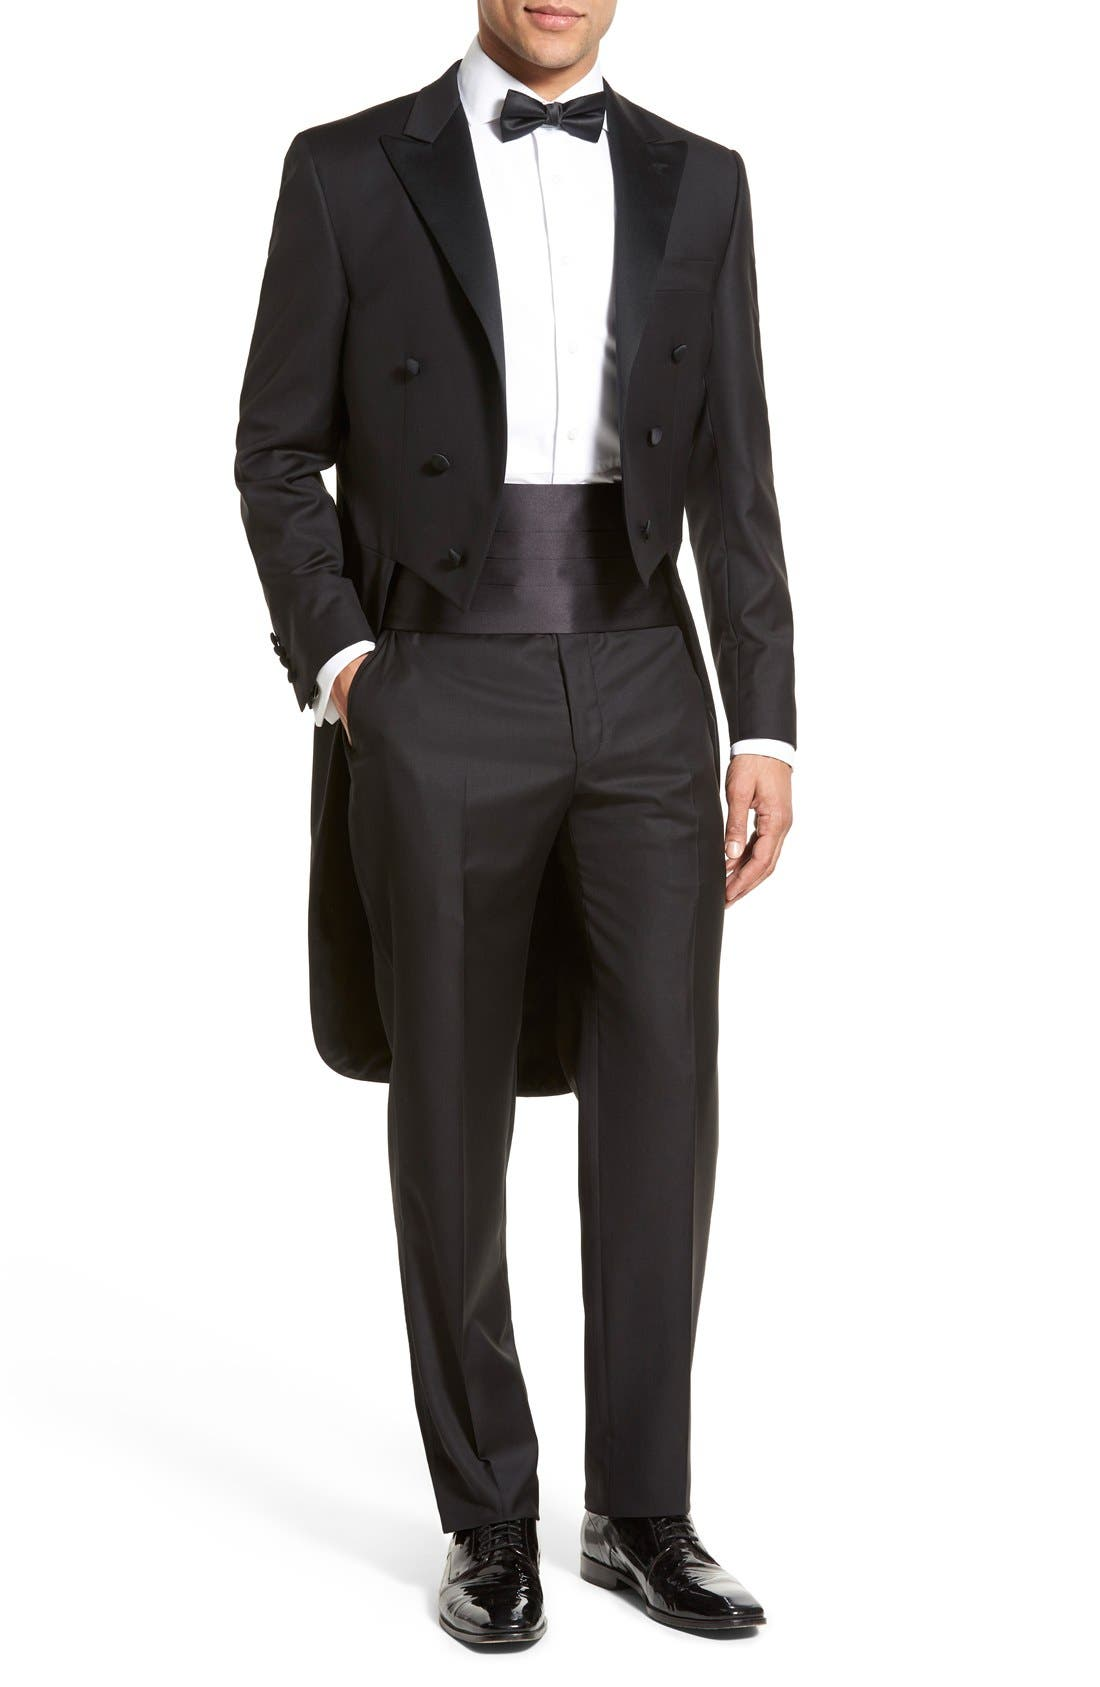 1950s Style Mens Suits | 50s Suits Mens Hickey Freeman Classic B Fit Tasmanian Wool Tailcoat Tuxedo $1,895.00 AT vintagedancer.com